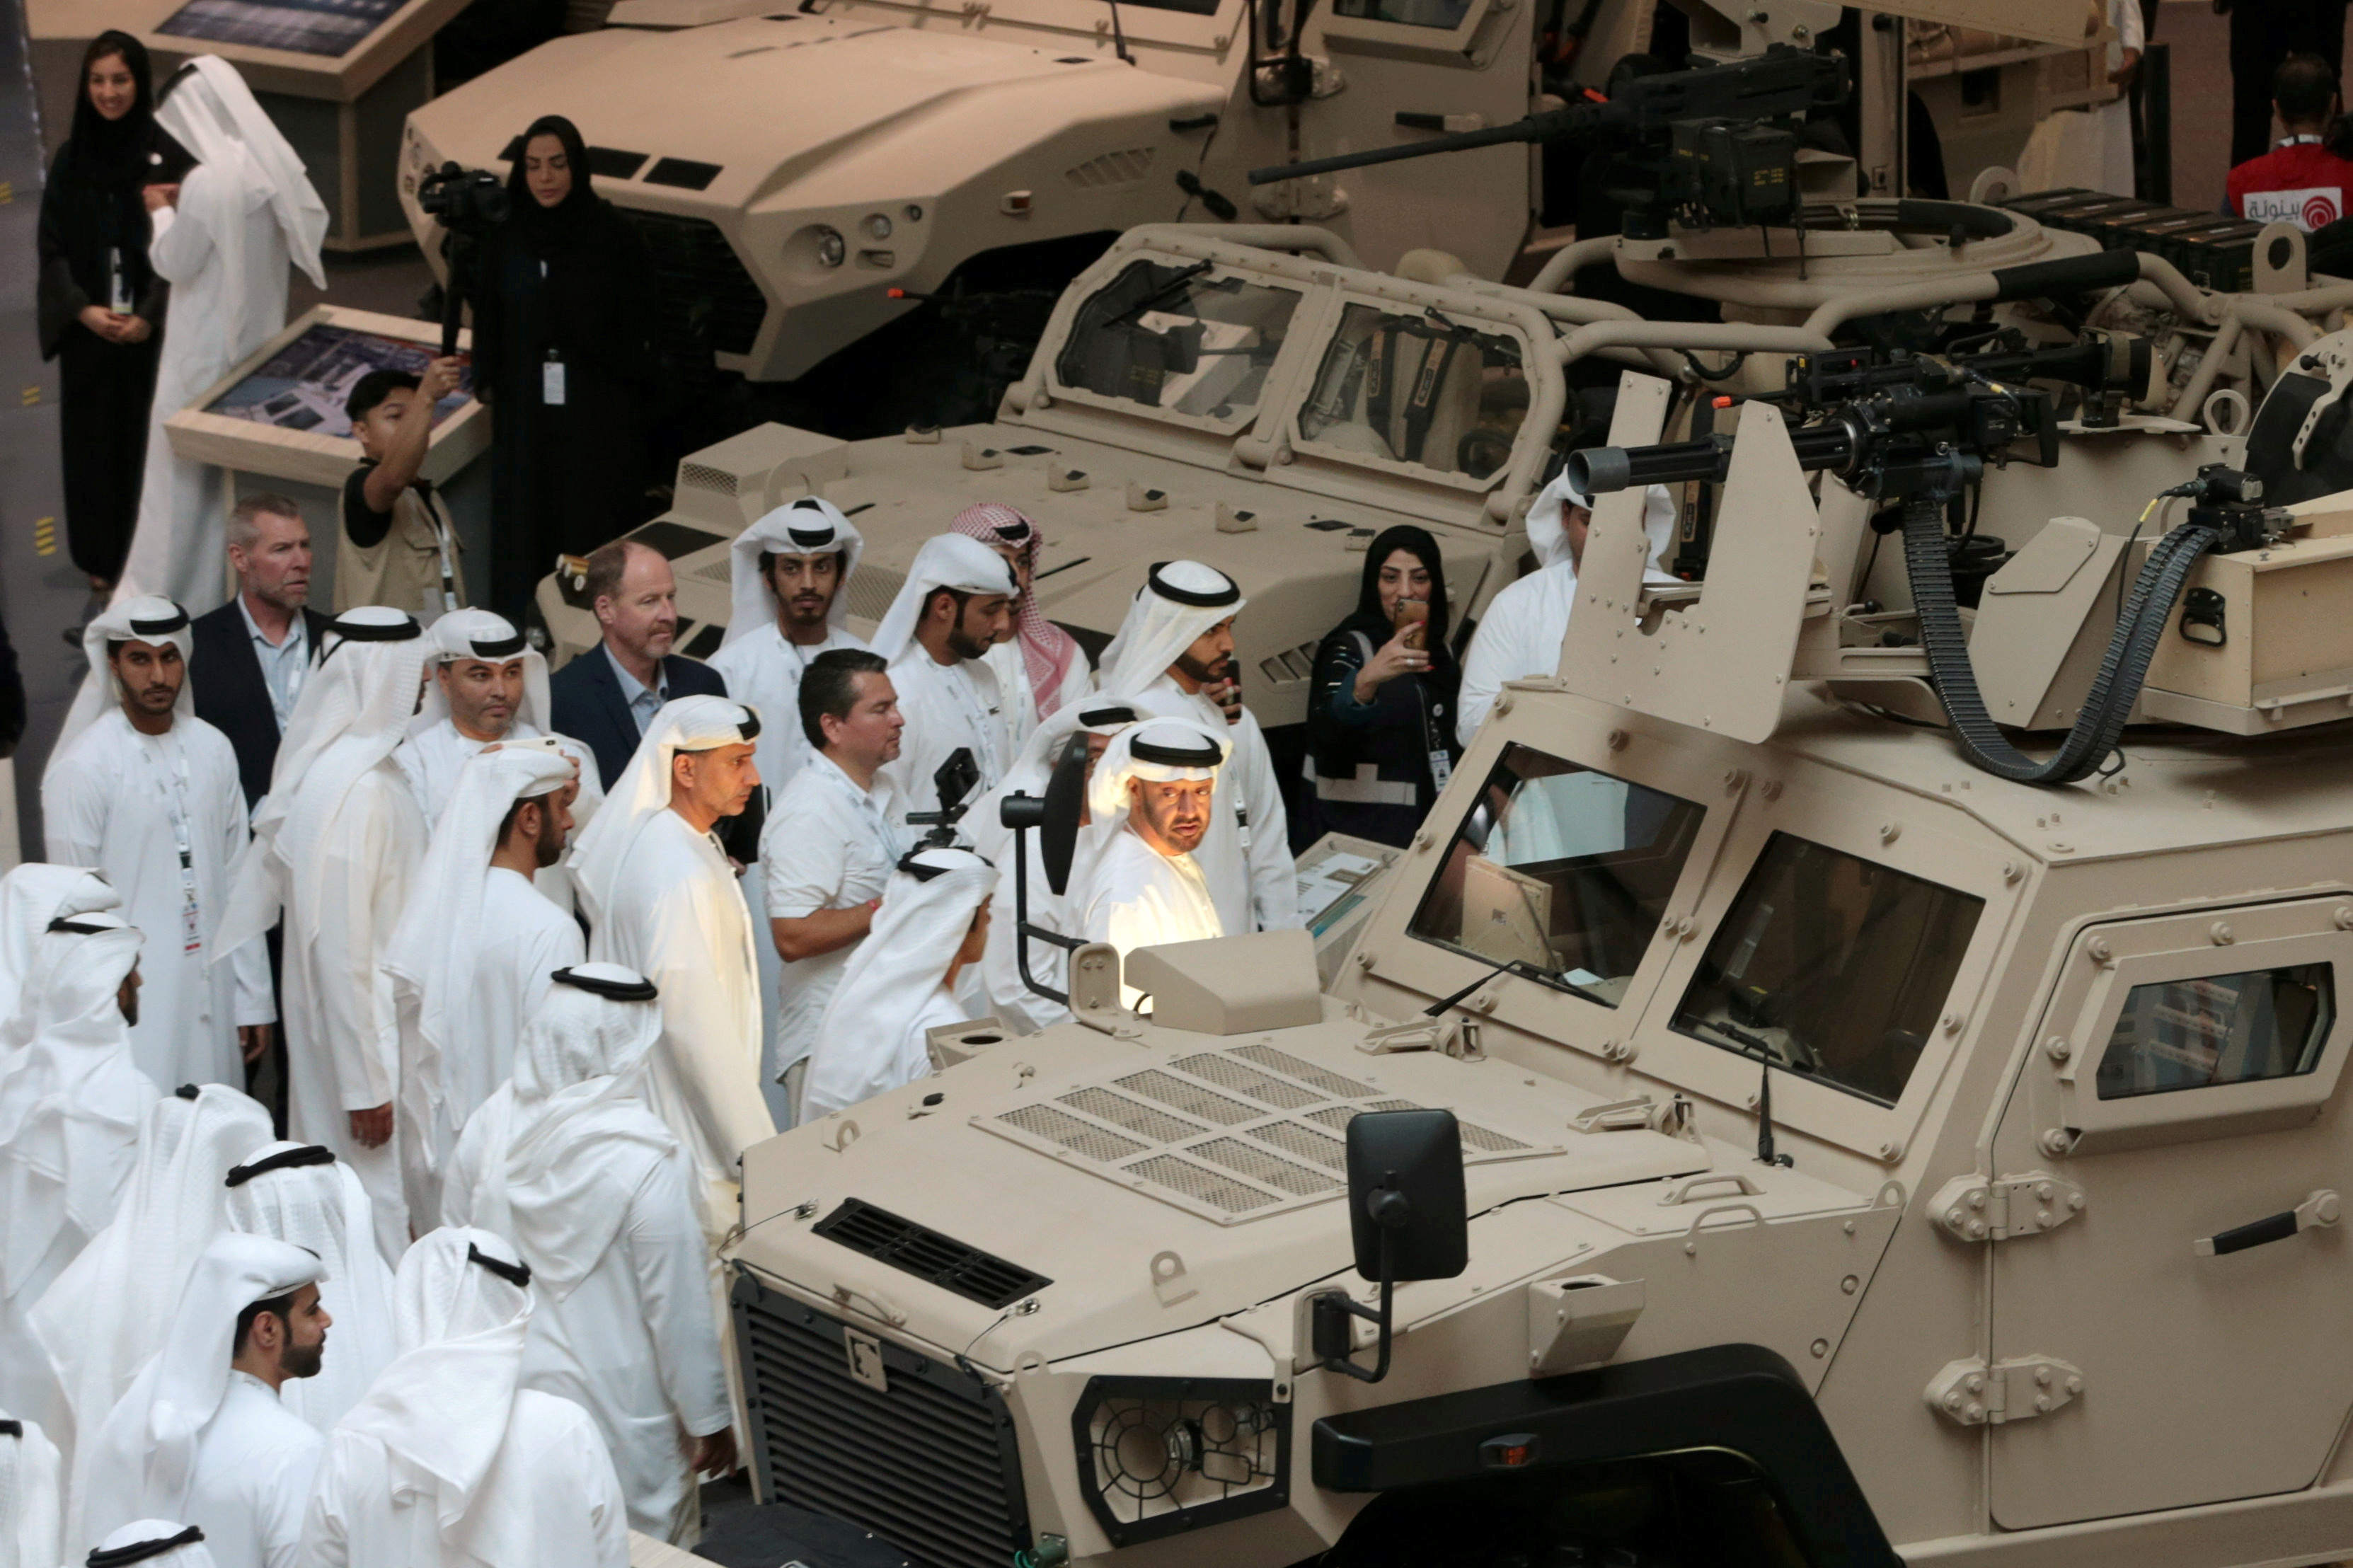 UAE signs $5 5 billion in military contracts as Yemen war